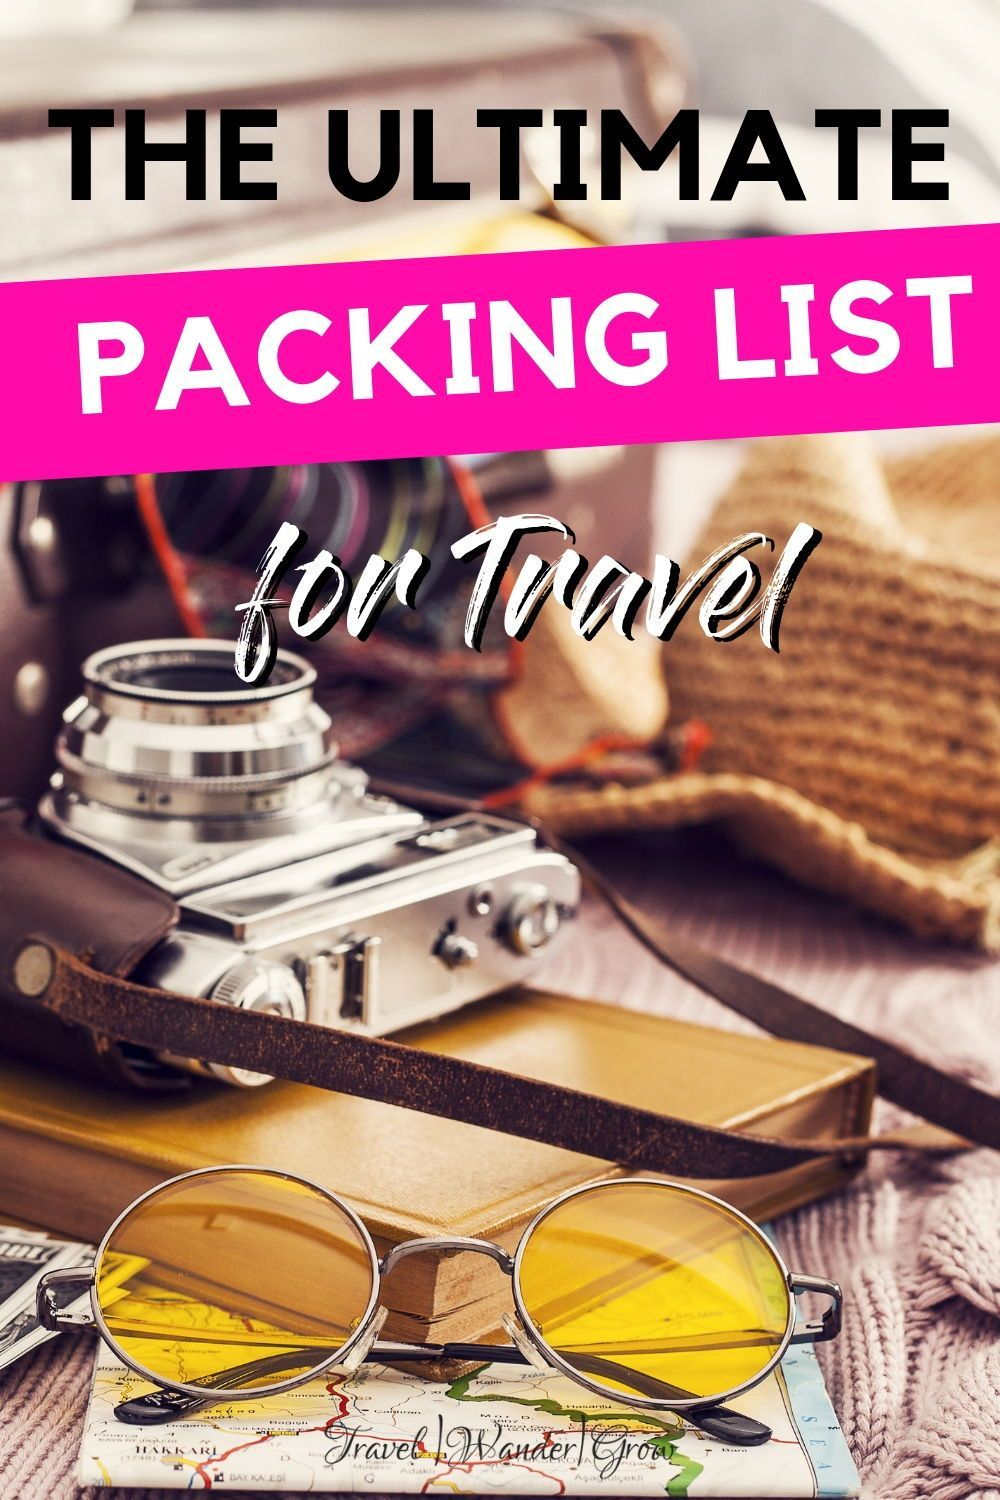 Do you often forget the important stuff when you travel? Well you'll never have to worry about that again! Get the ultimate packing list for vacation! This list includes the items that you need for toiletries, flight essentials, electronics and more! This list also comes with a free printable, so you can use it time and time again! #ultimatepackinglist